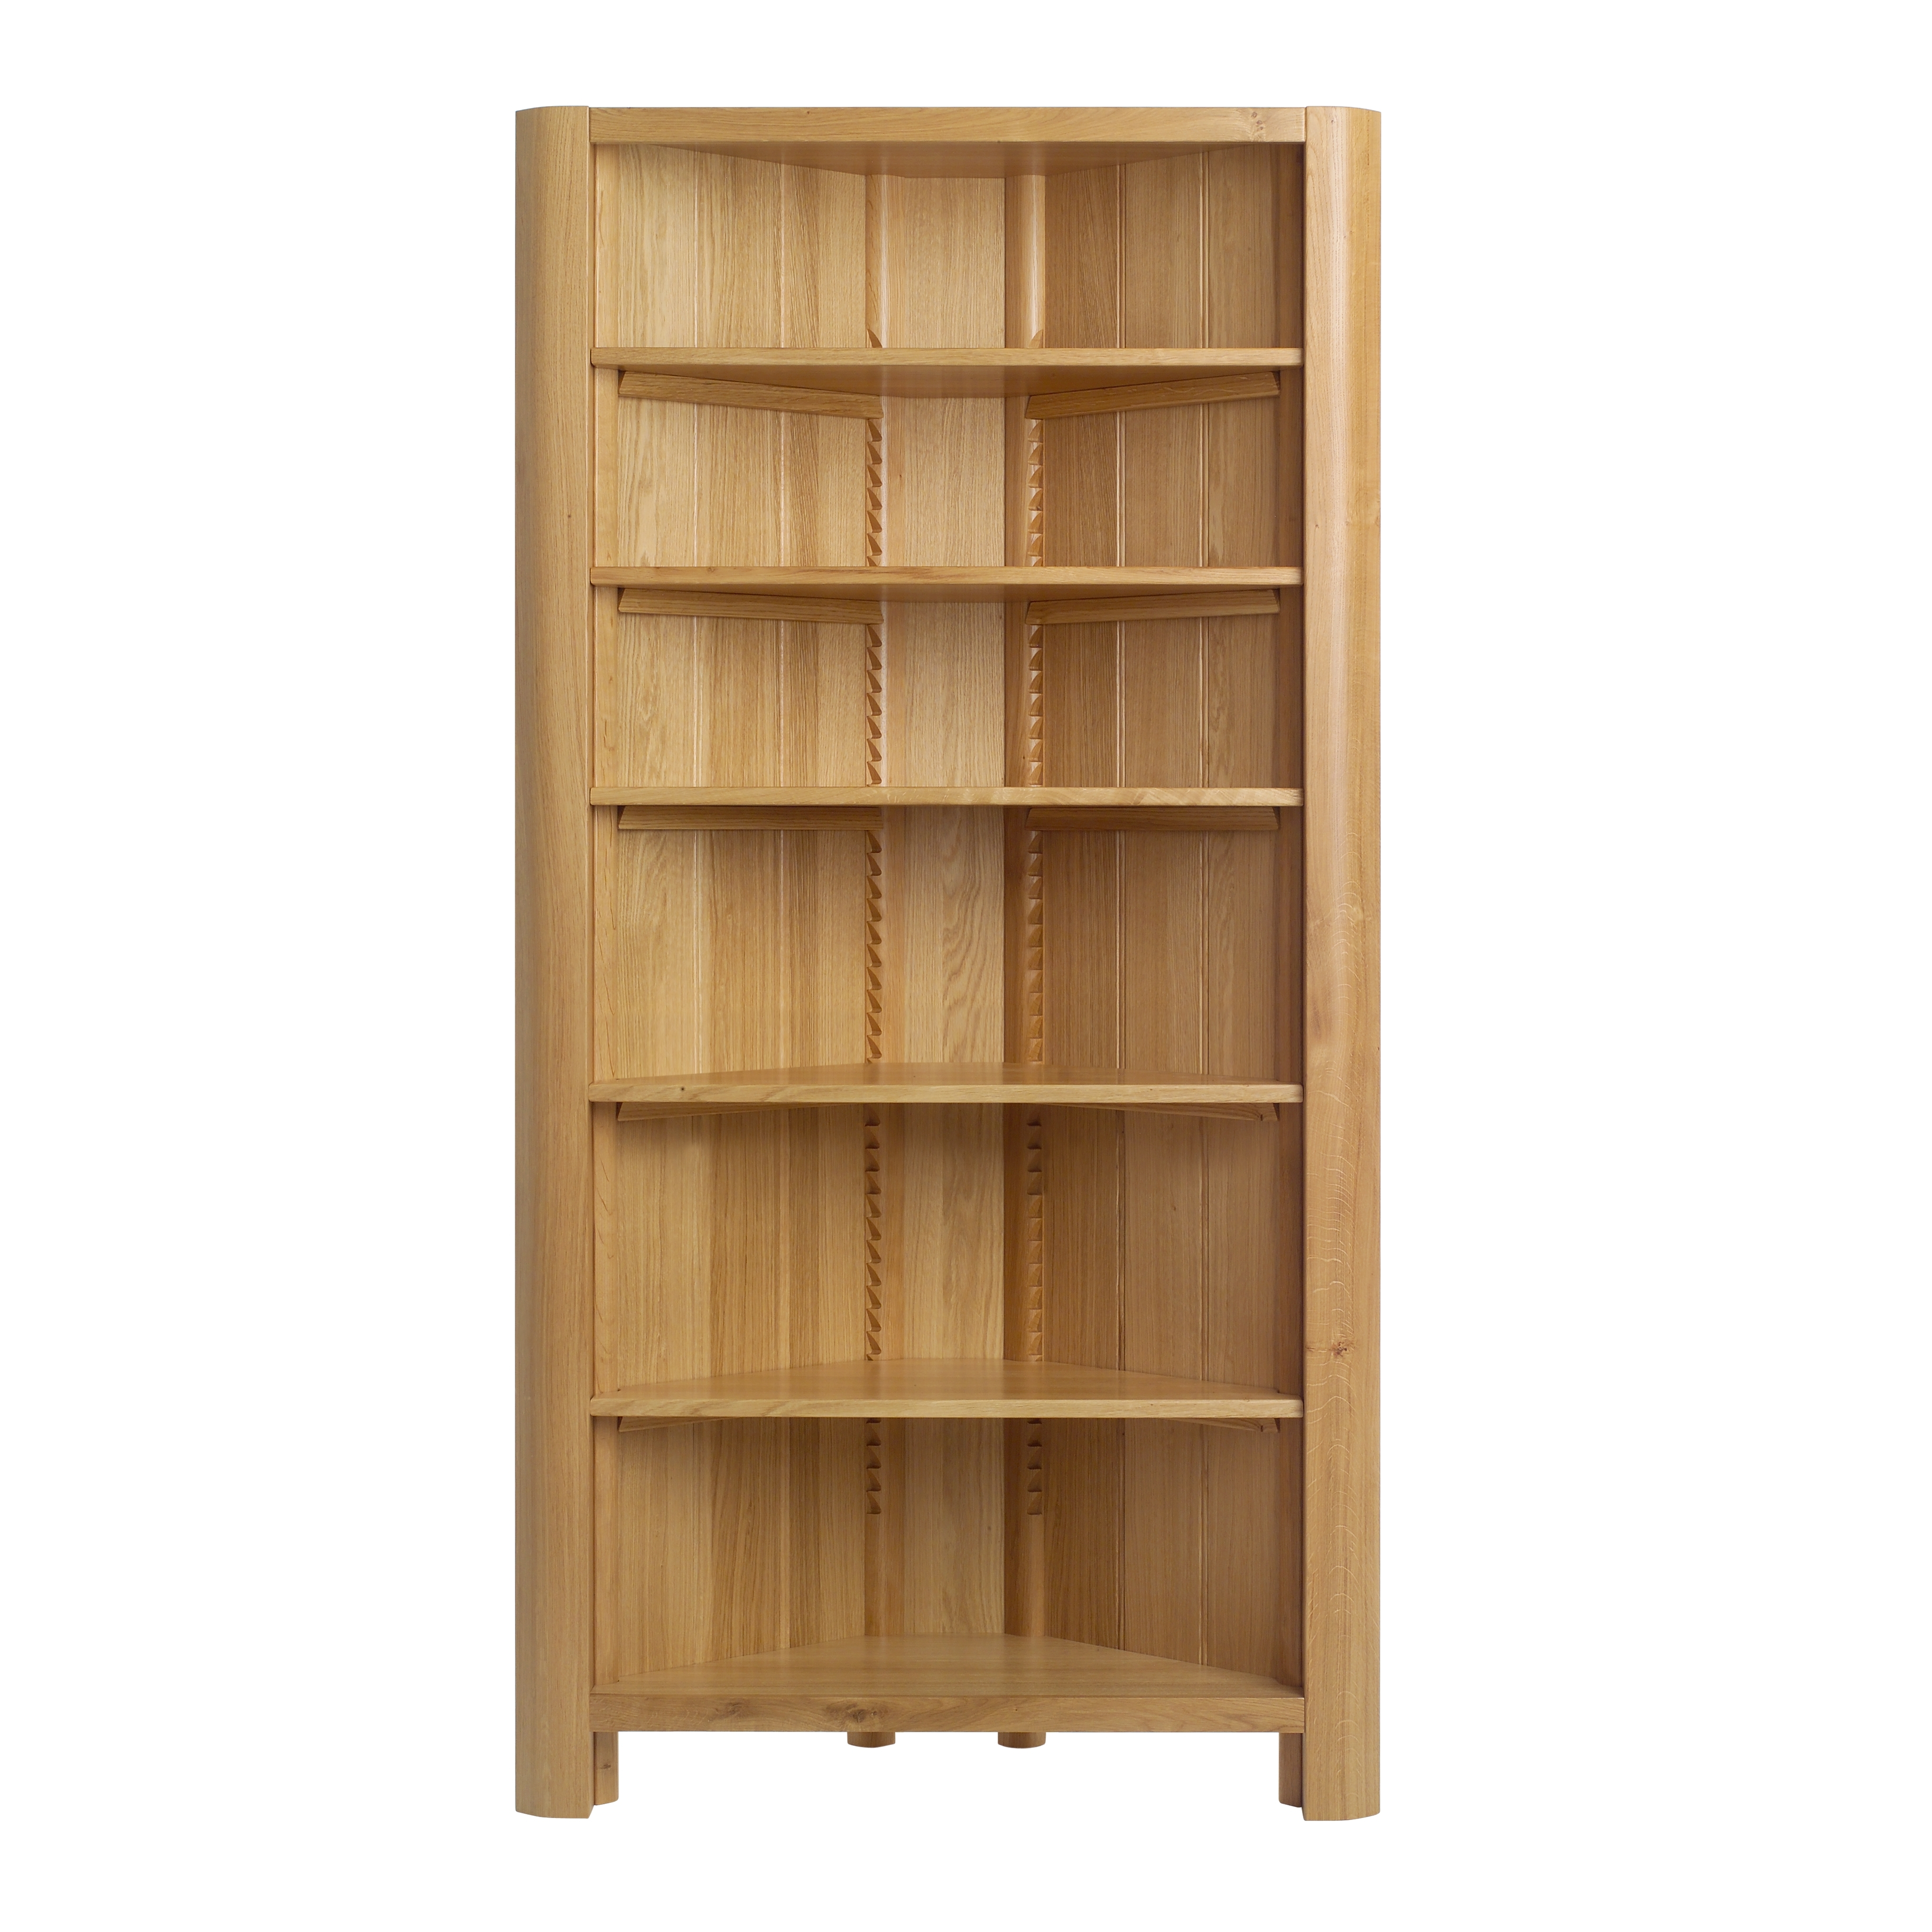 Well Known Tall Corner Bookshelf Narrow Bookcase Singular Picture Concept Throughout Corner Bookcases (View 14 of 15)